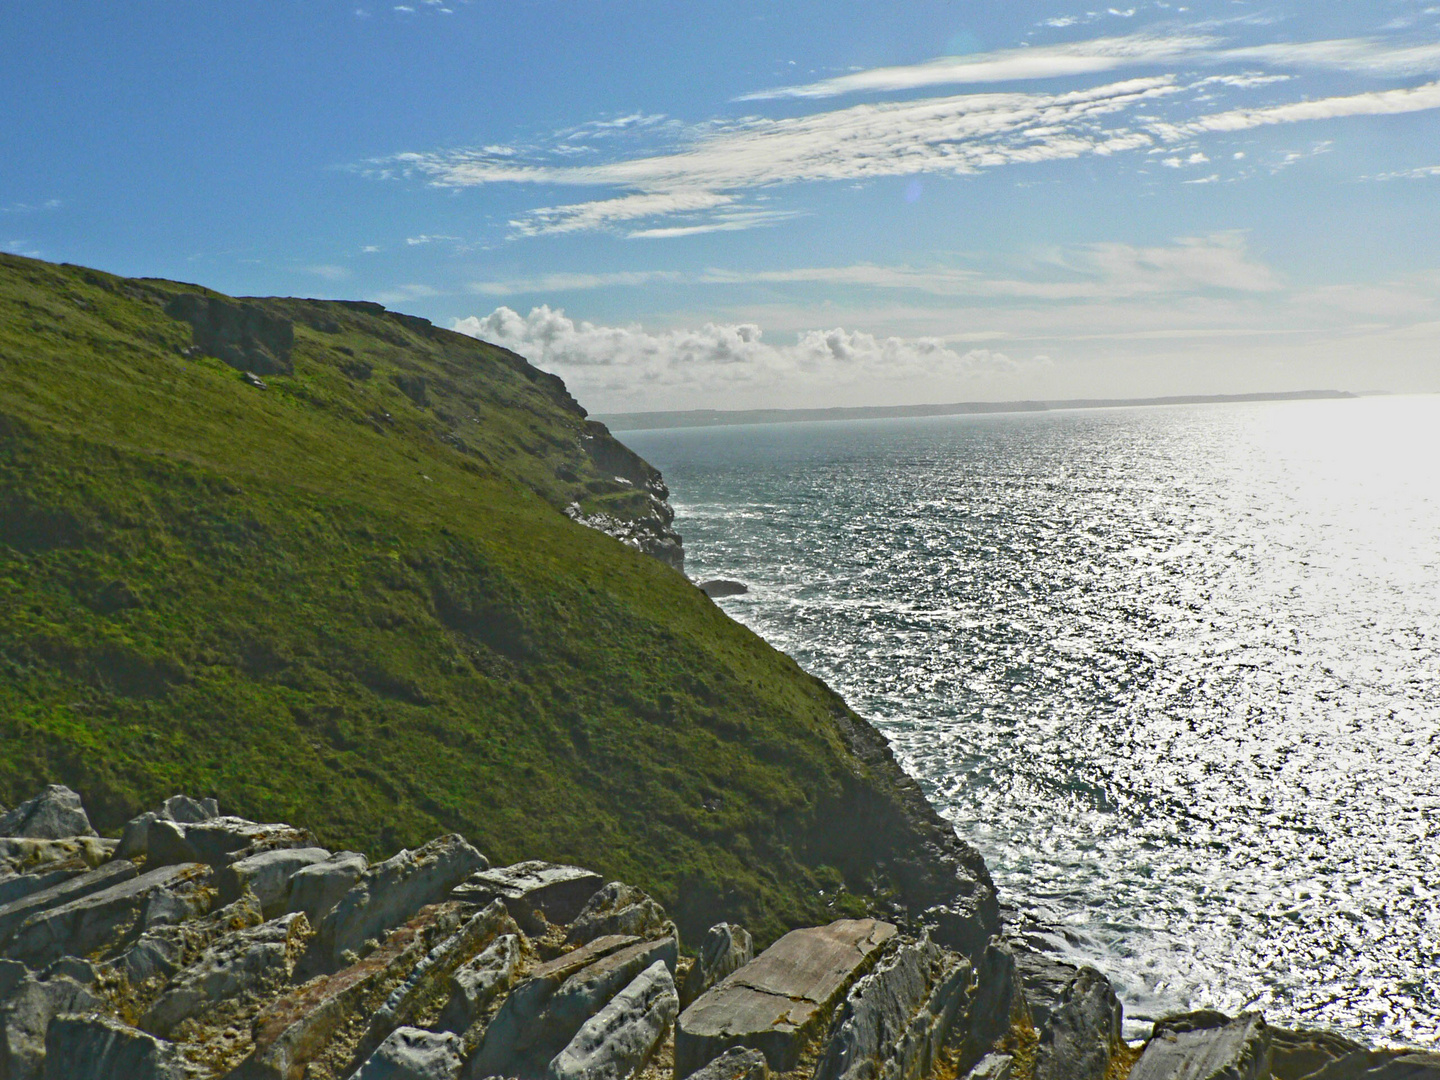 View from Tintagel Castle along the Gull Rock Coast Line